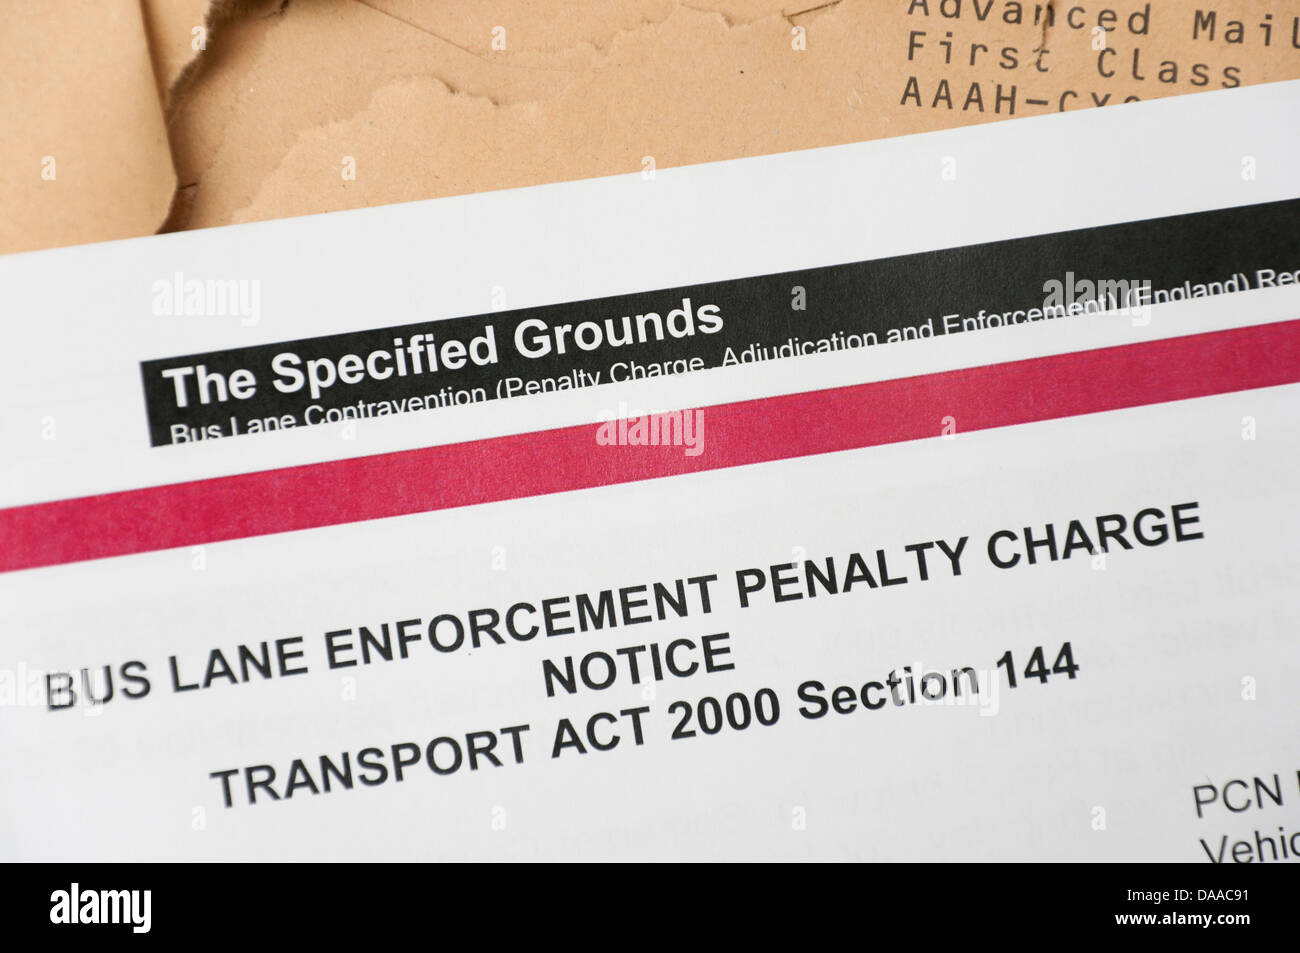 Penalty charge enforcement notce fine for driving in a bus lane. - Stock Image